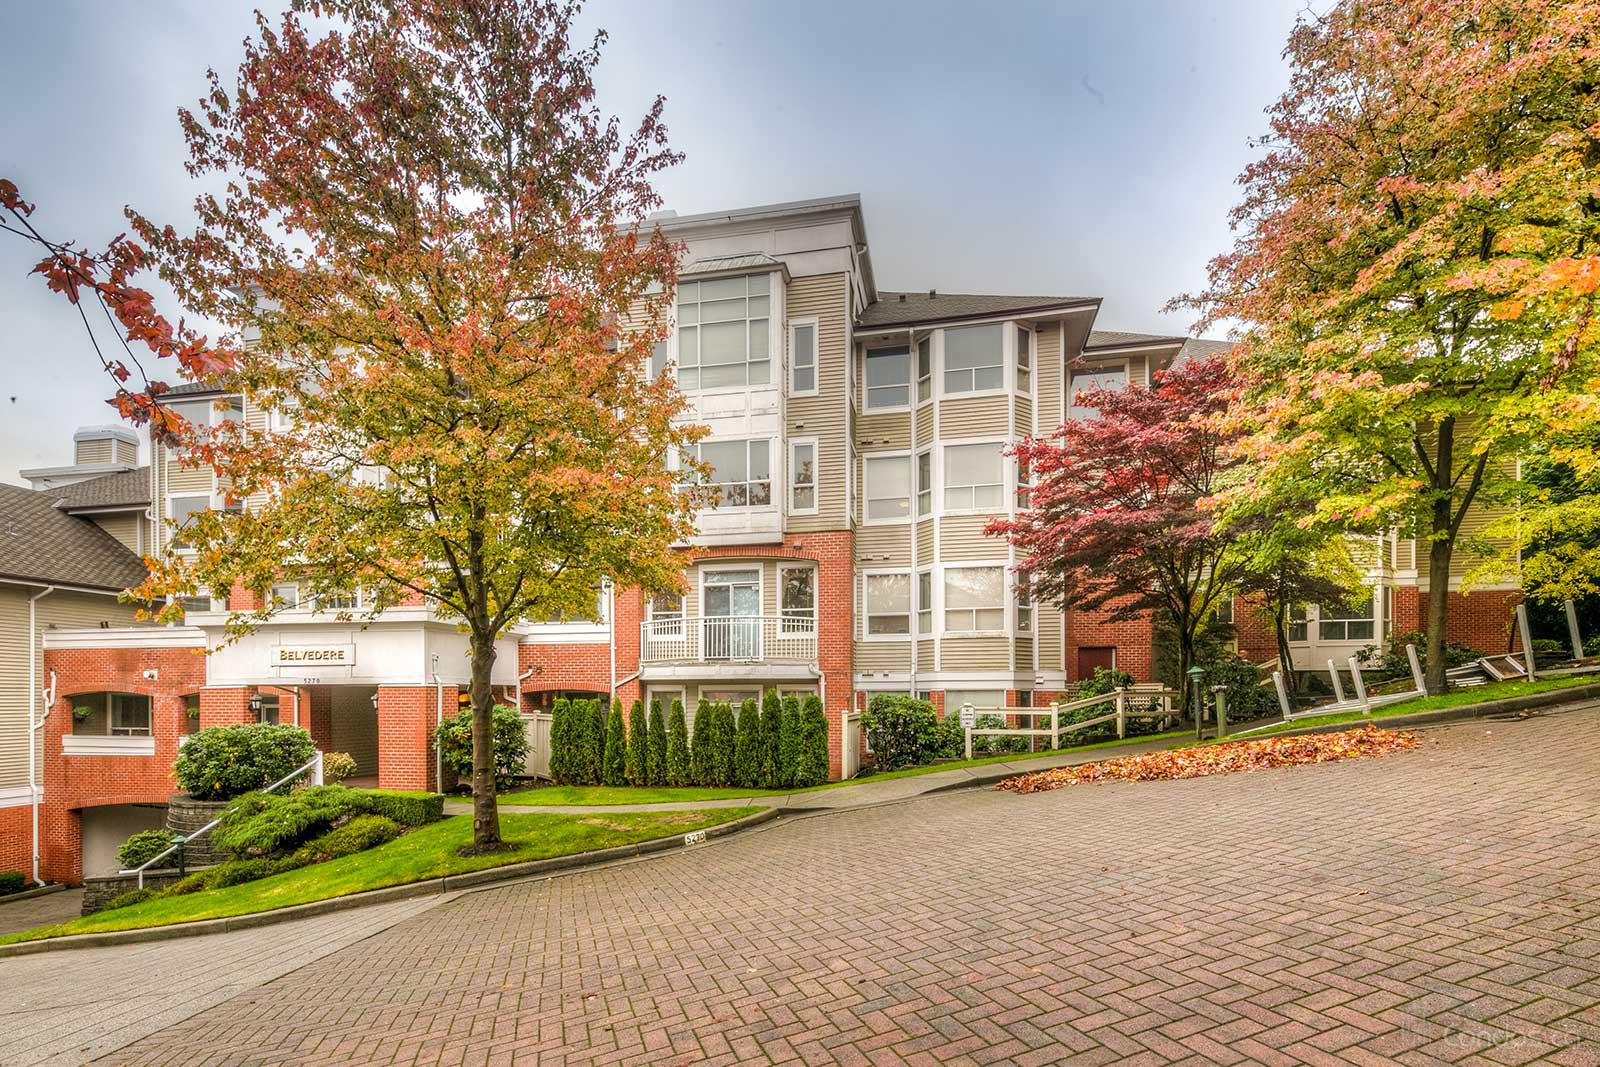 Belvedere at 5280 Oakmount Crescent, Burnaby 0